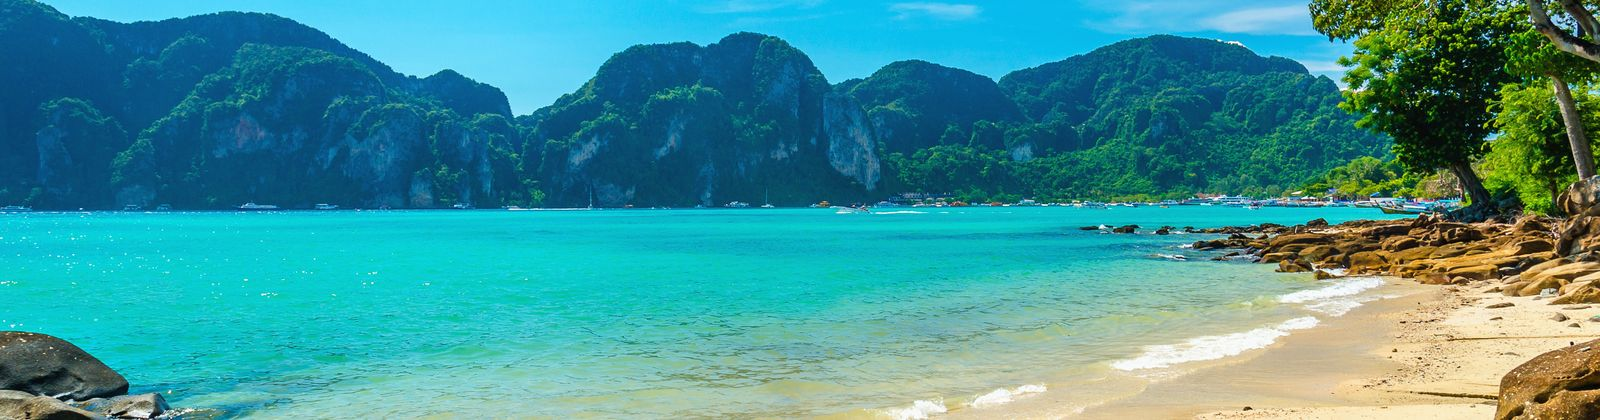 12 of the world's cheapest holiday destinations for 2017